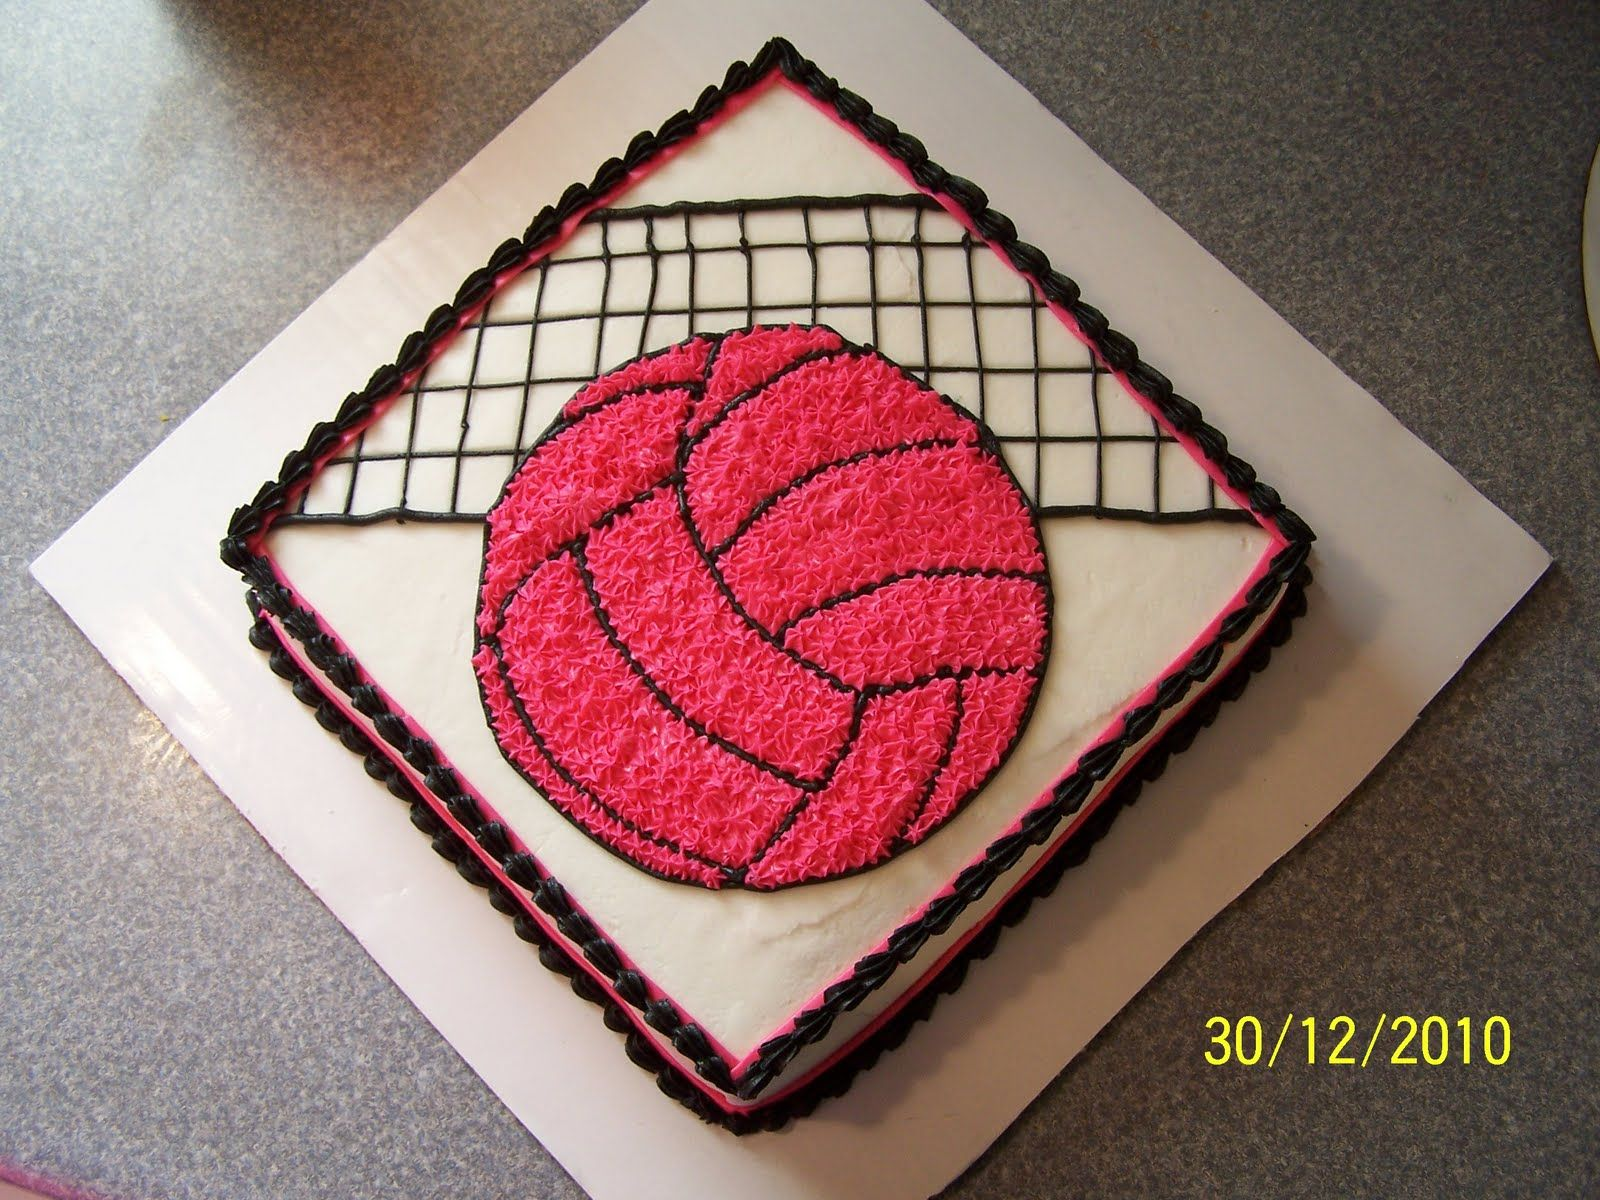 Volleyball Birthday Volleyball Birthday Cakes Birthday Cakes Girls Kids Birthday Cake Decorating